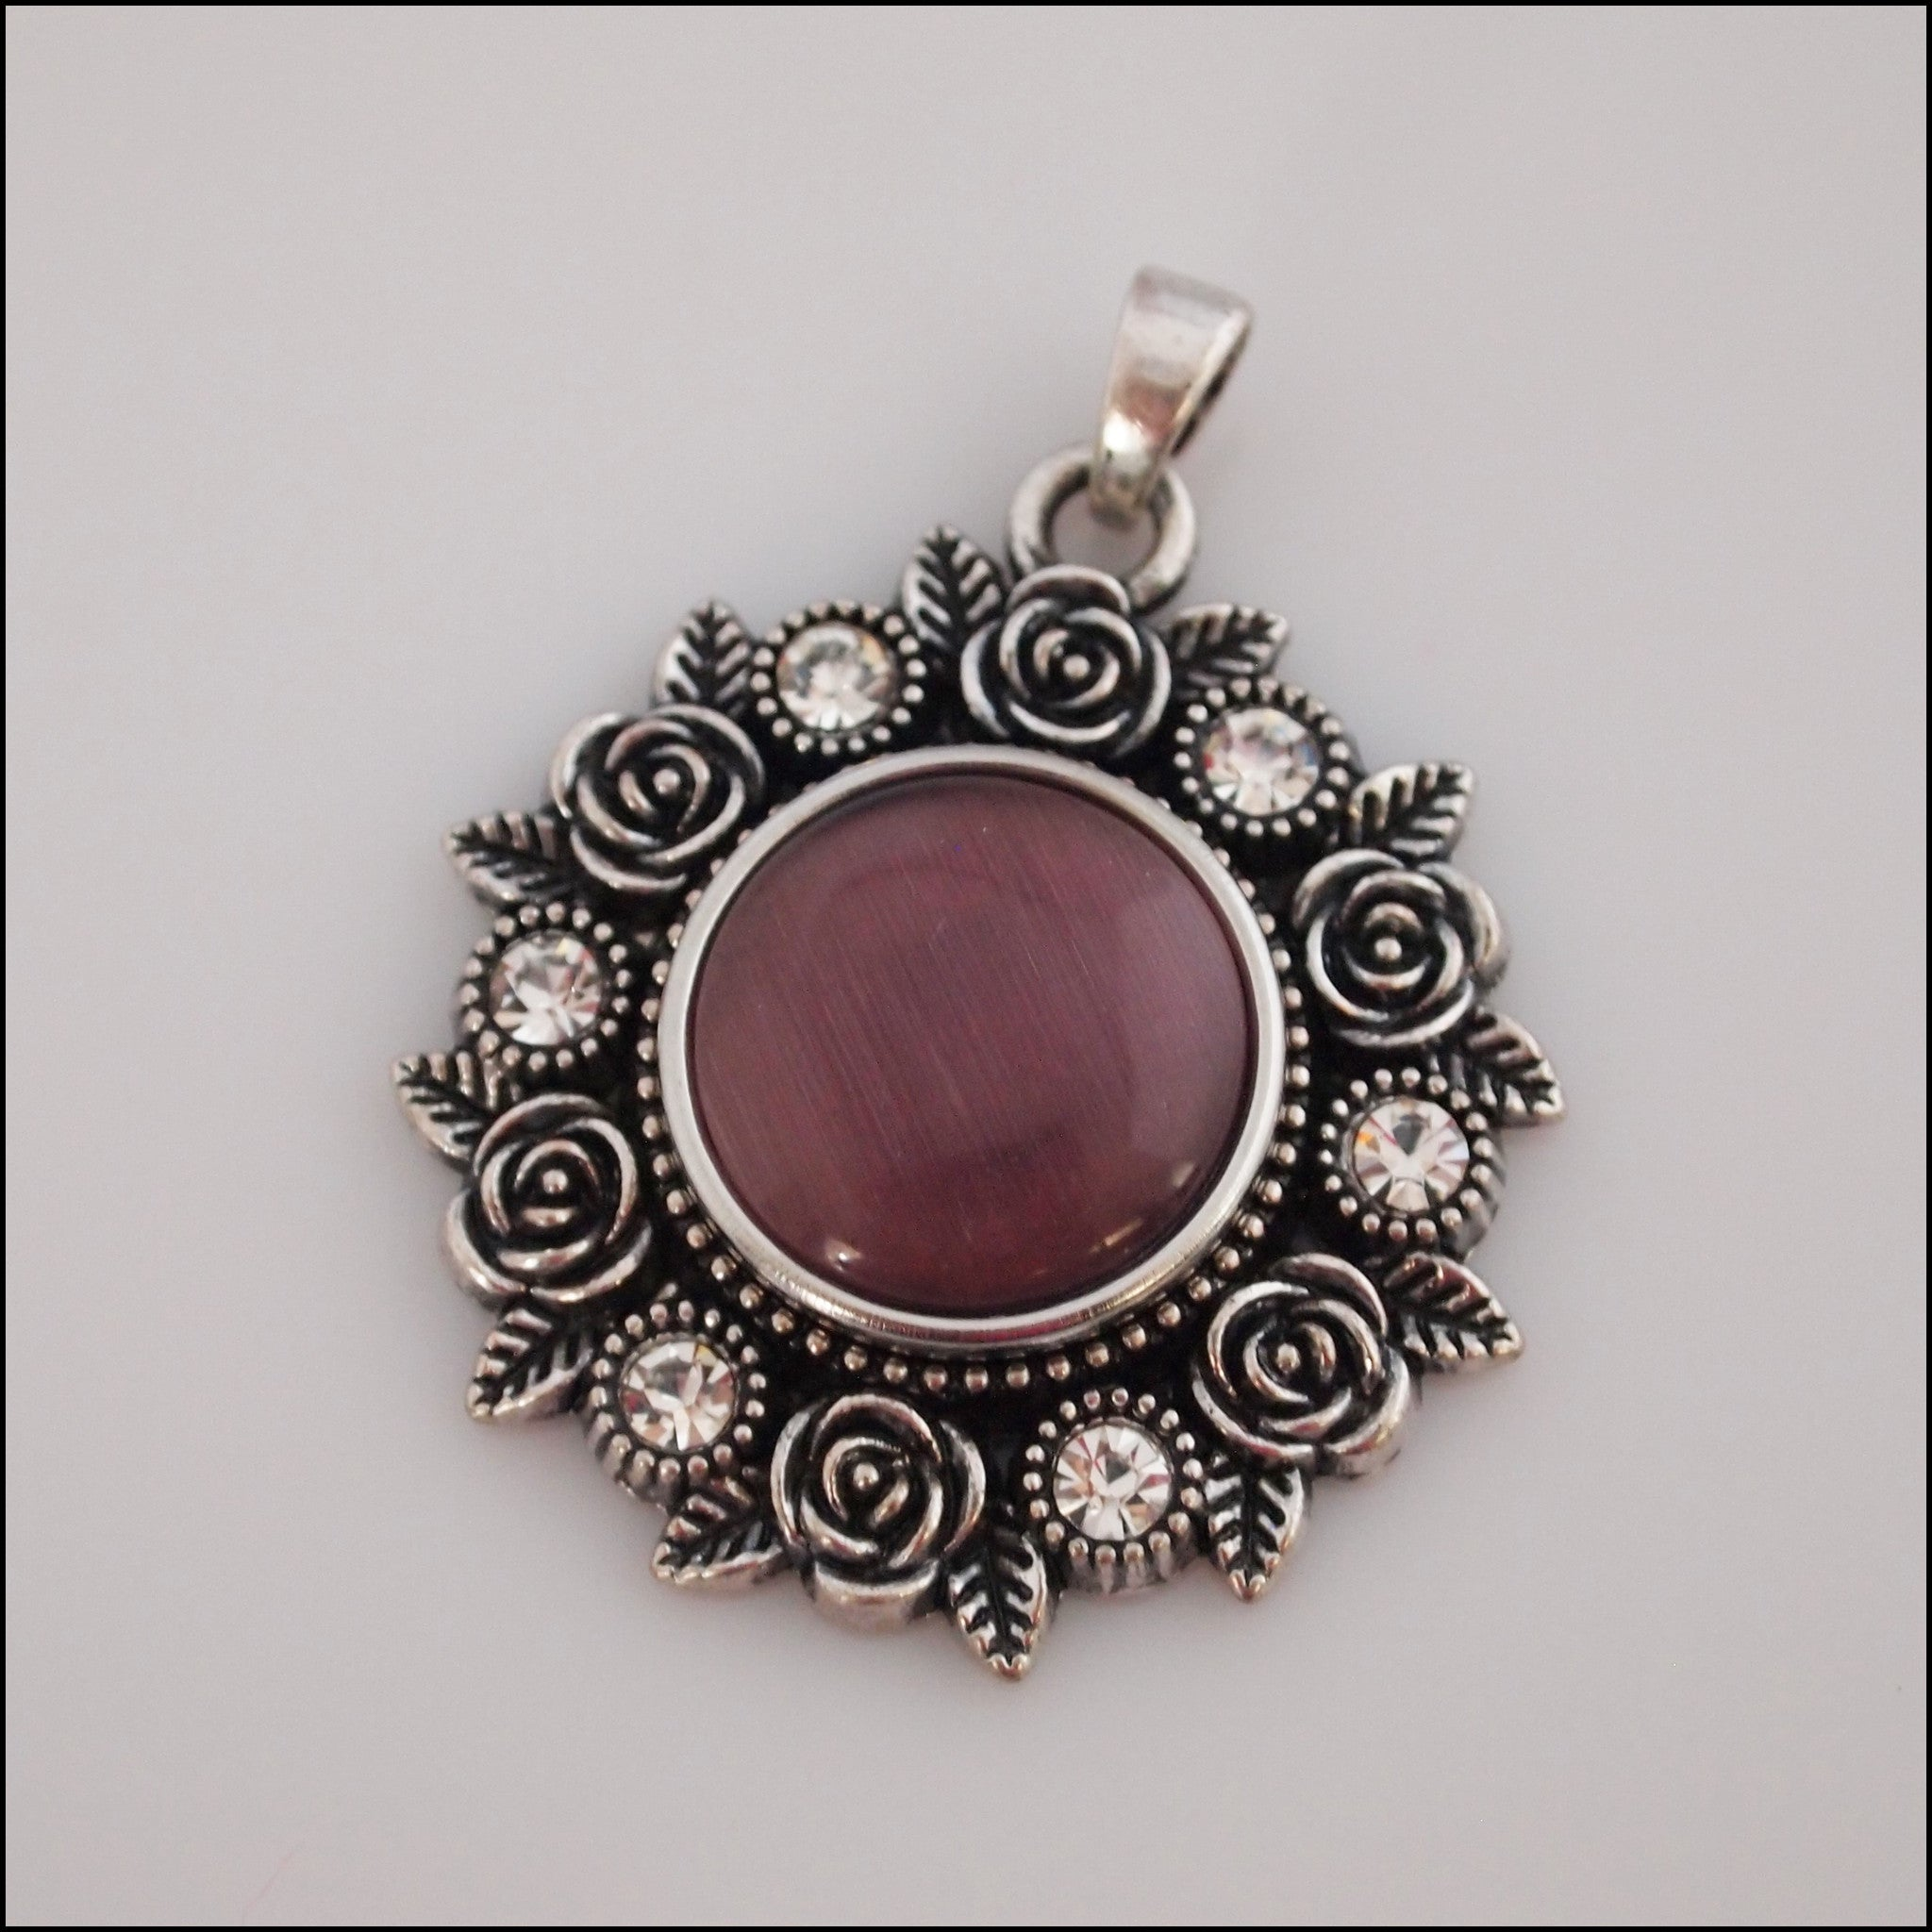 Rose Garden Snap Pendant with Snap Button - Find Something Special